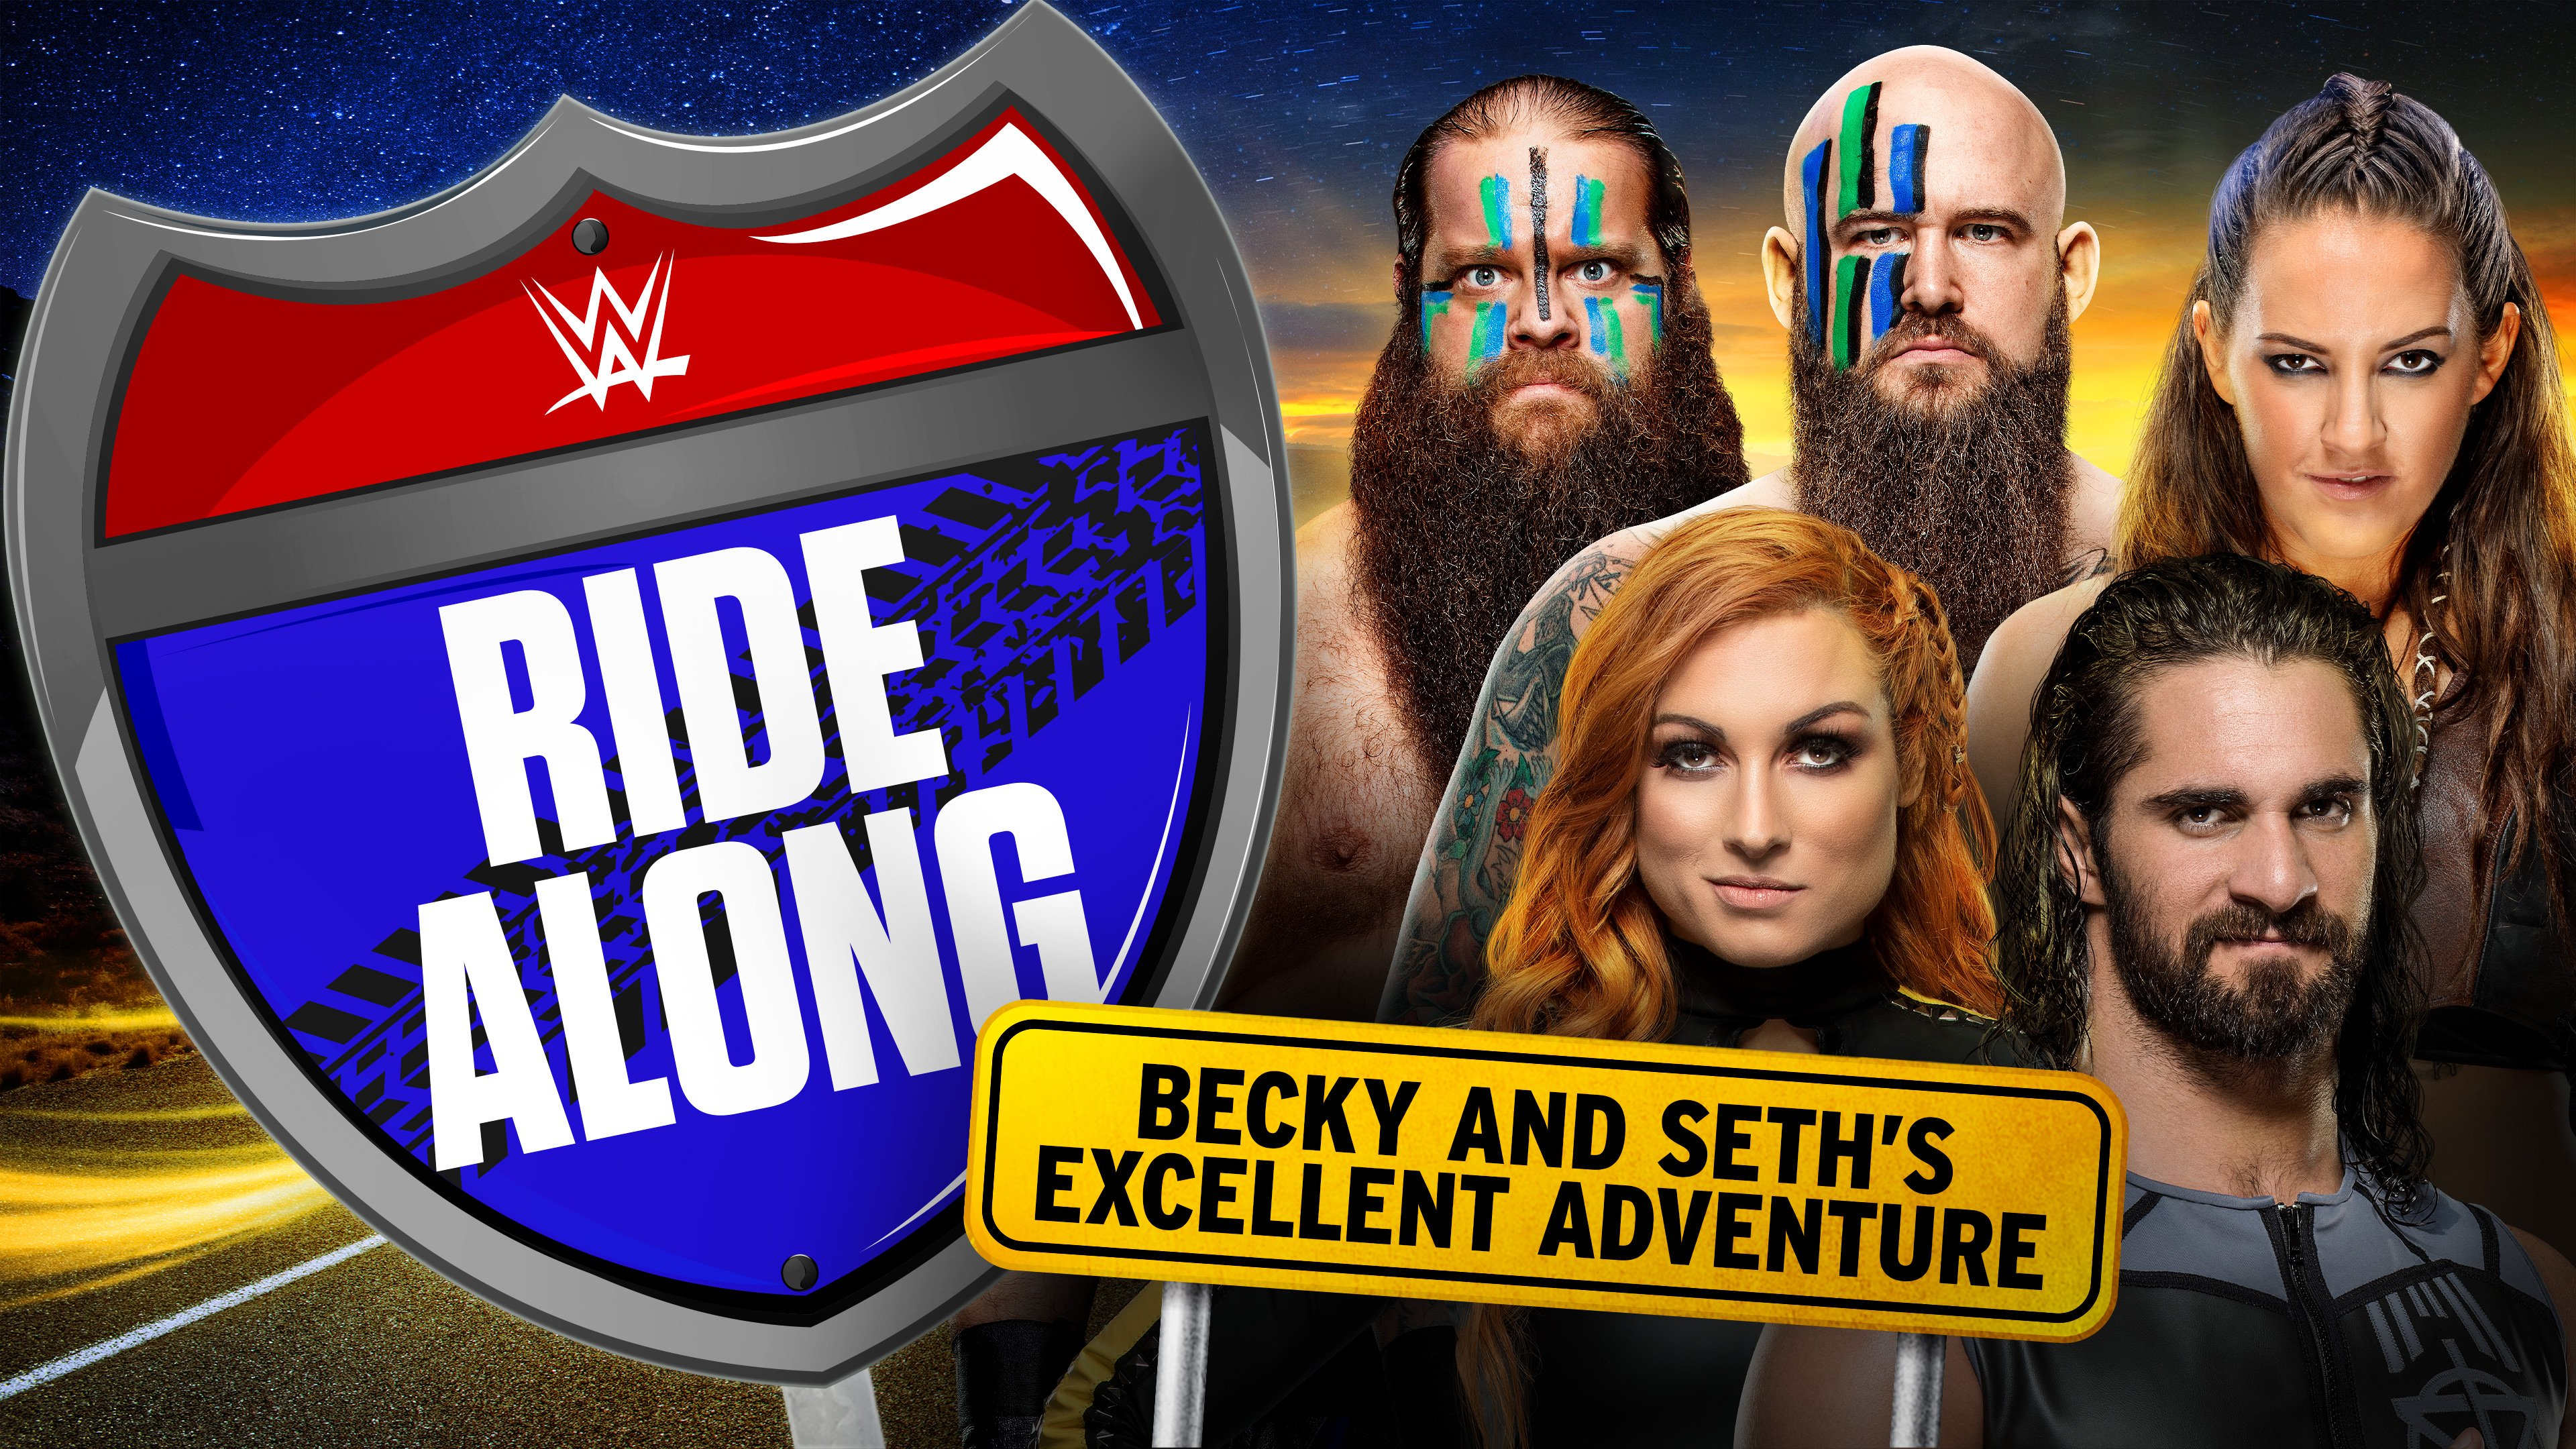 Becky and Seth's Excellent Adventure